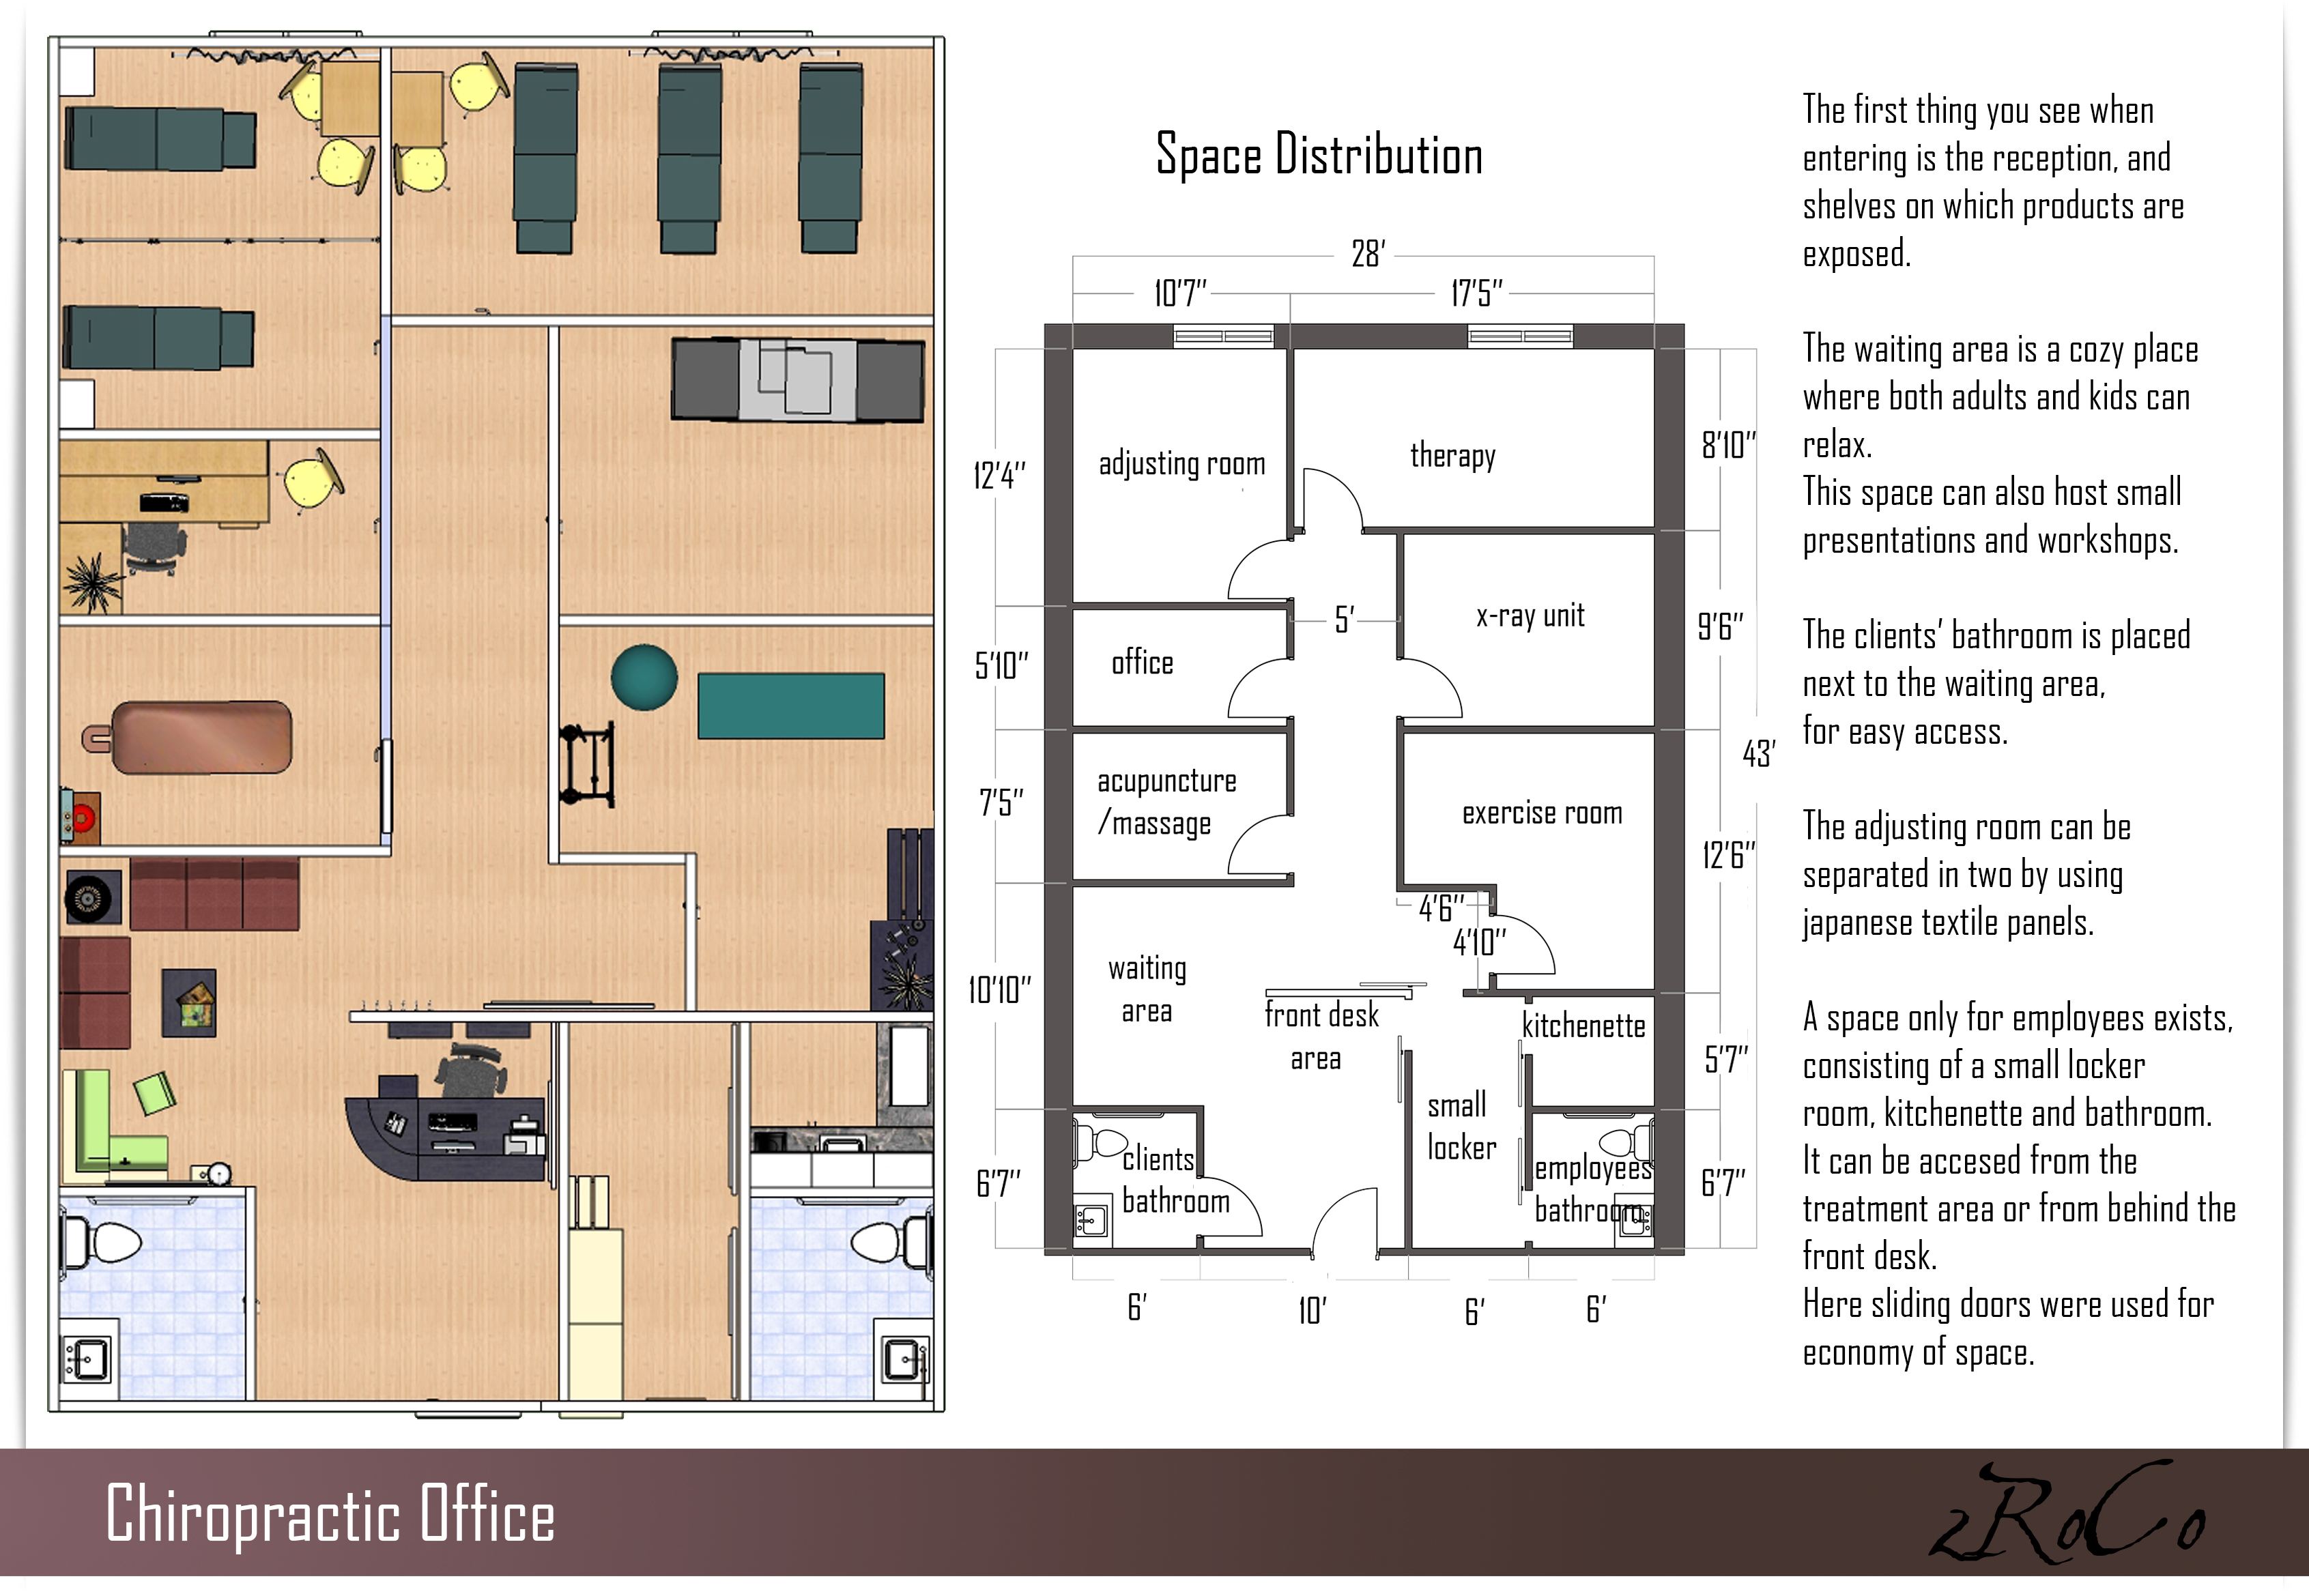 Chiropractic Office Layout Design